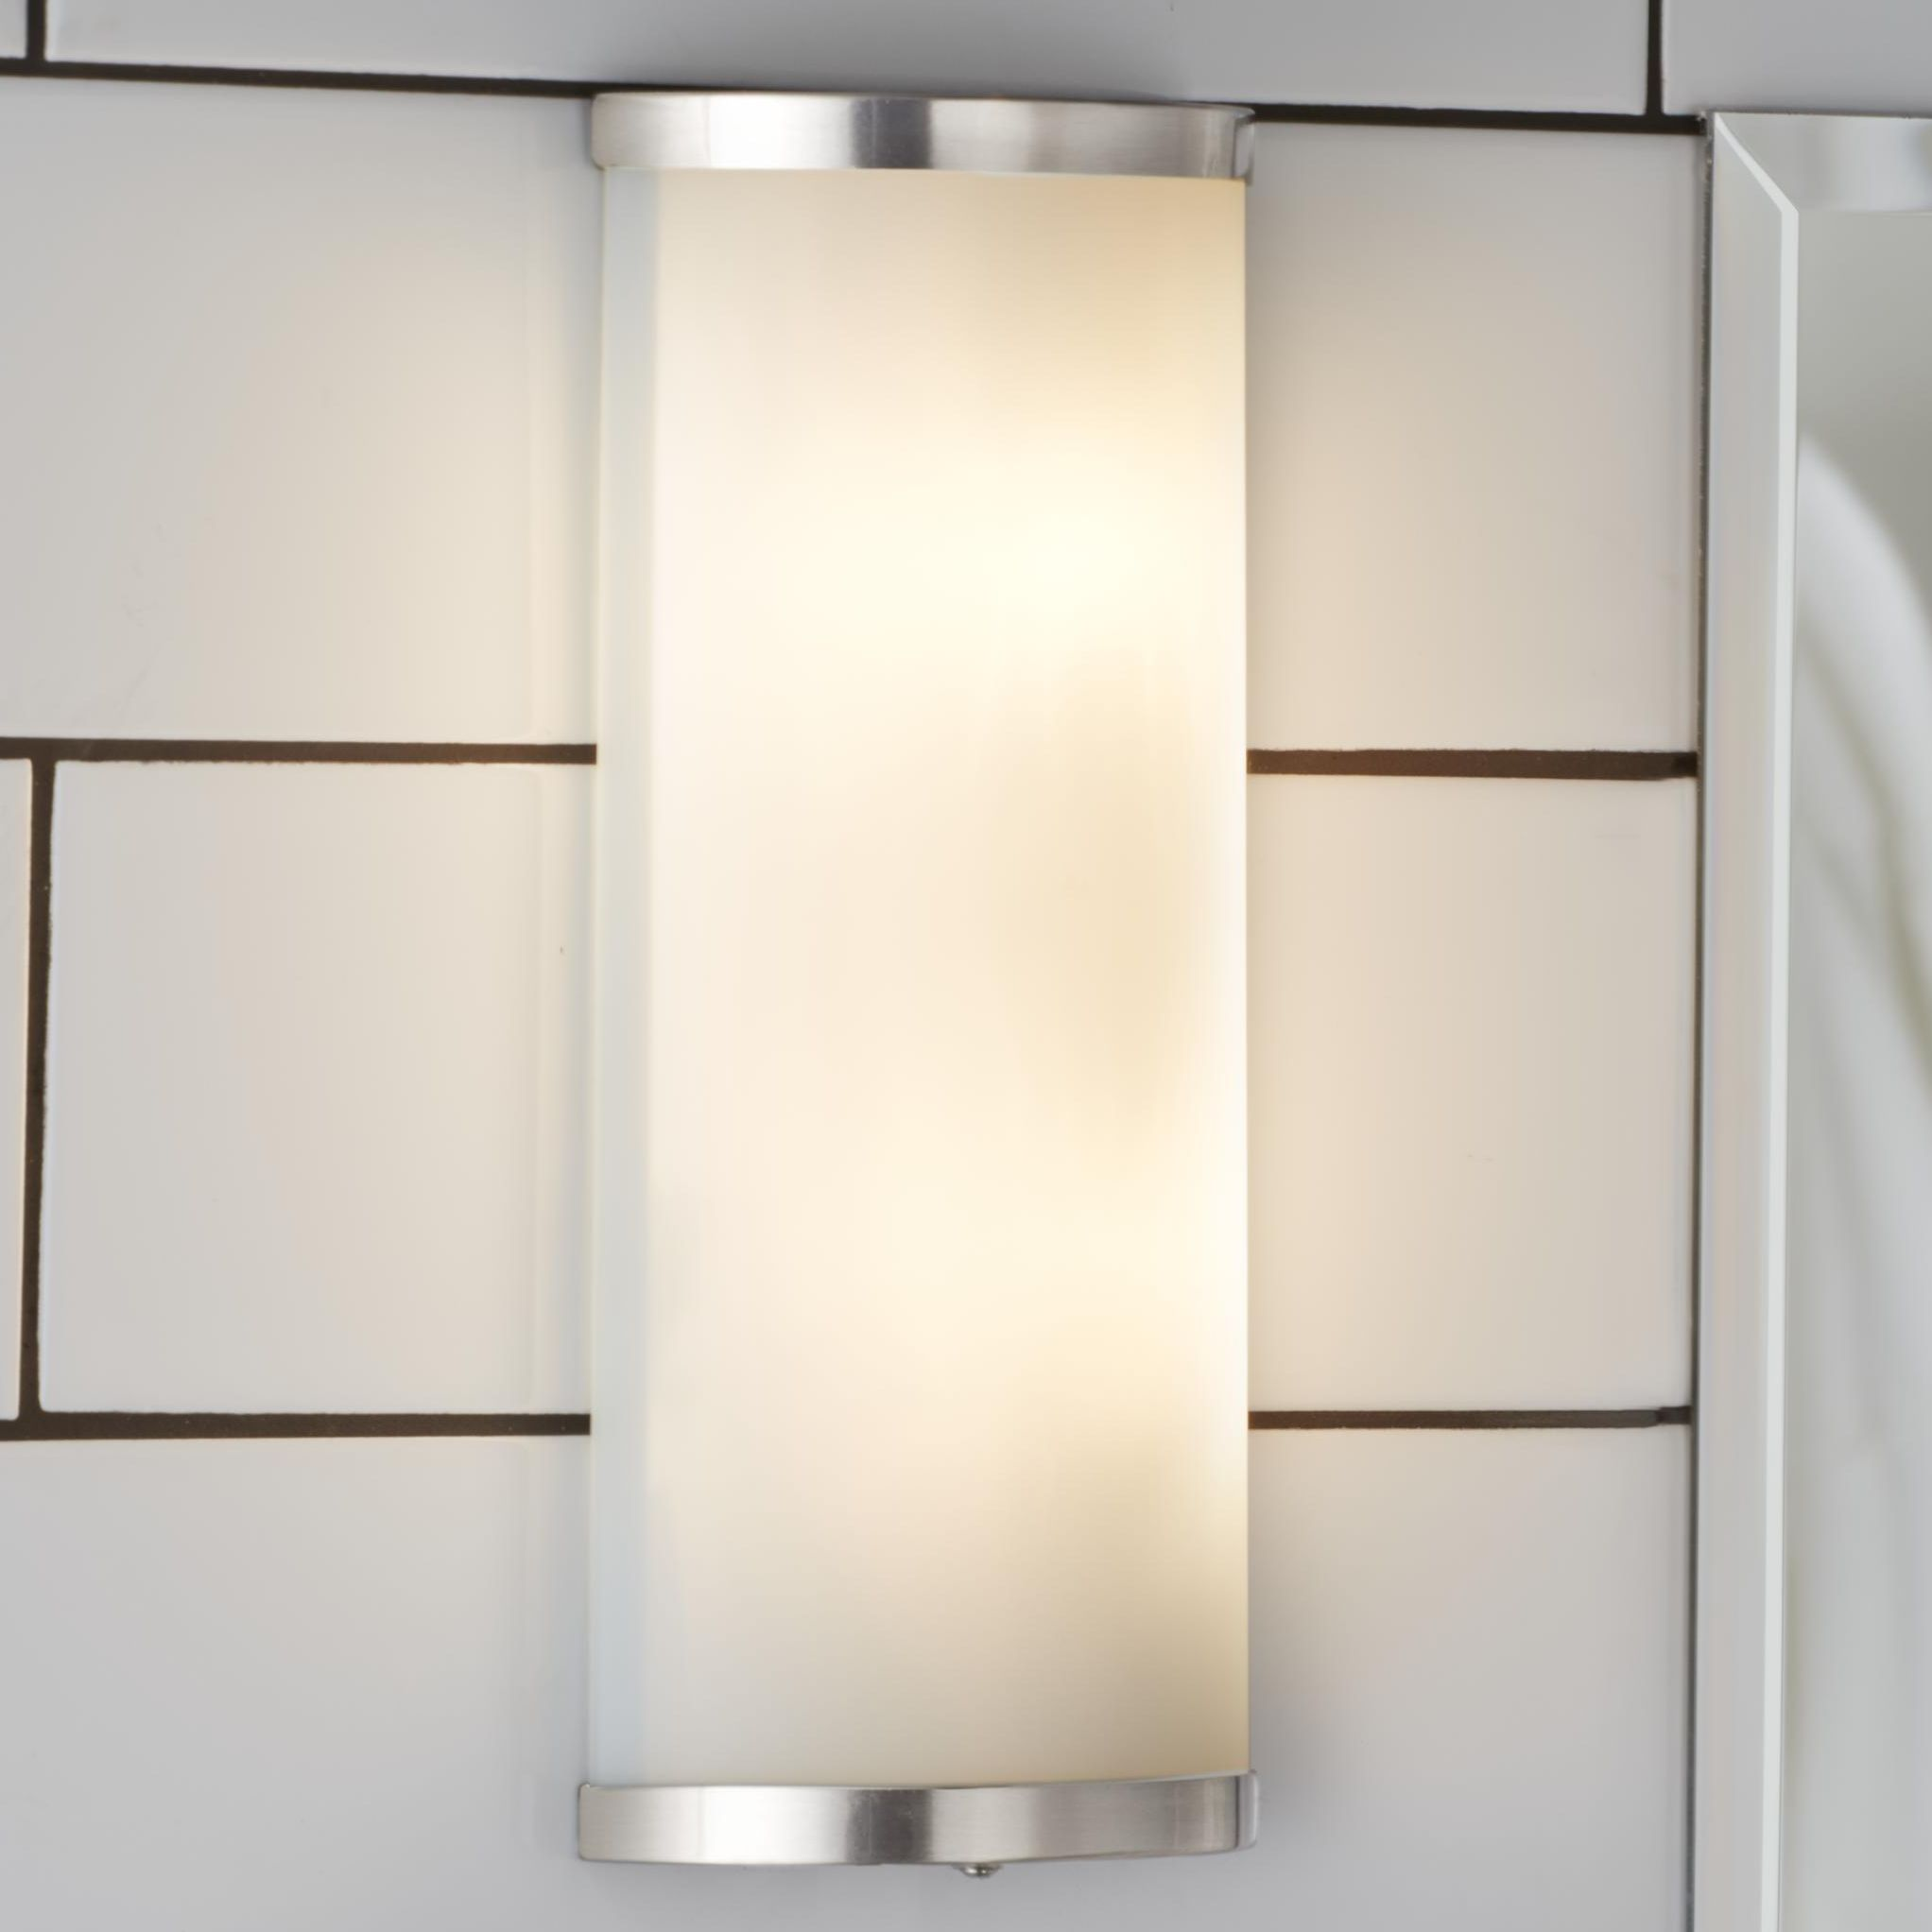 Bathroom Lights Galway bathroom lights | bathroom wall & ceiling lights | diy at b&q